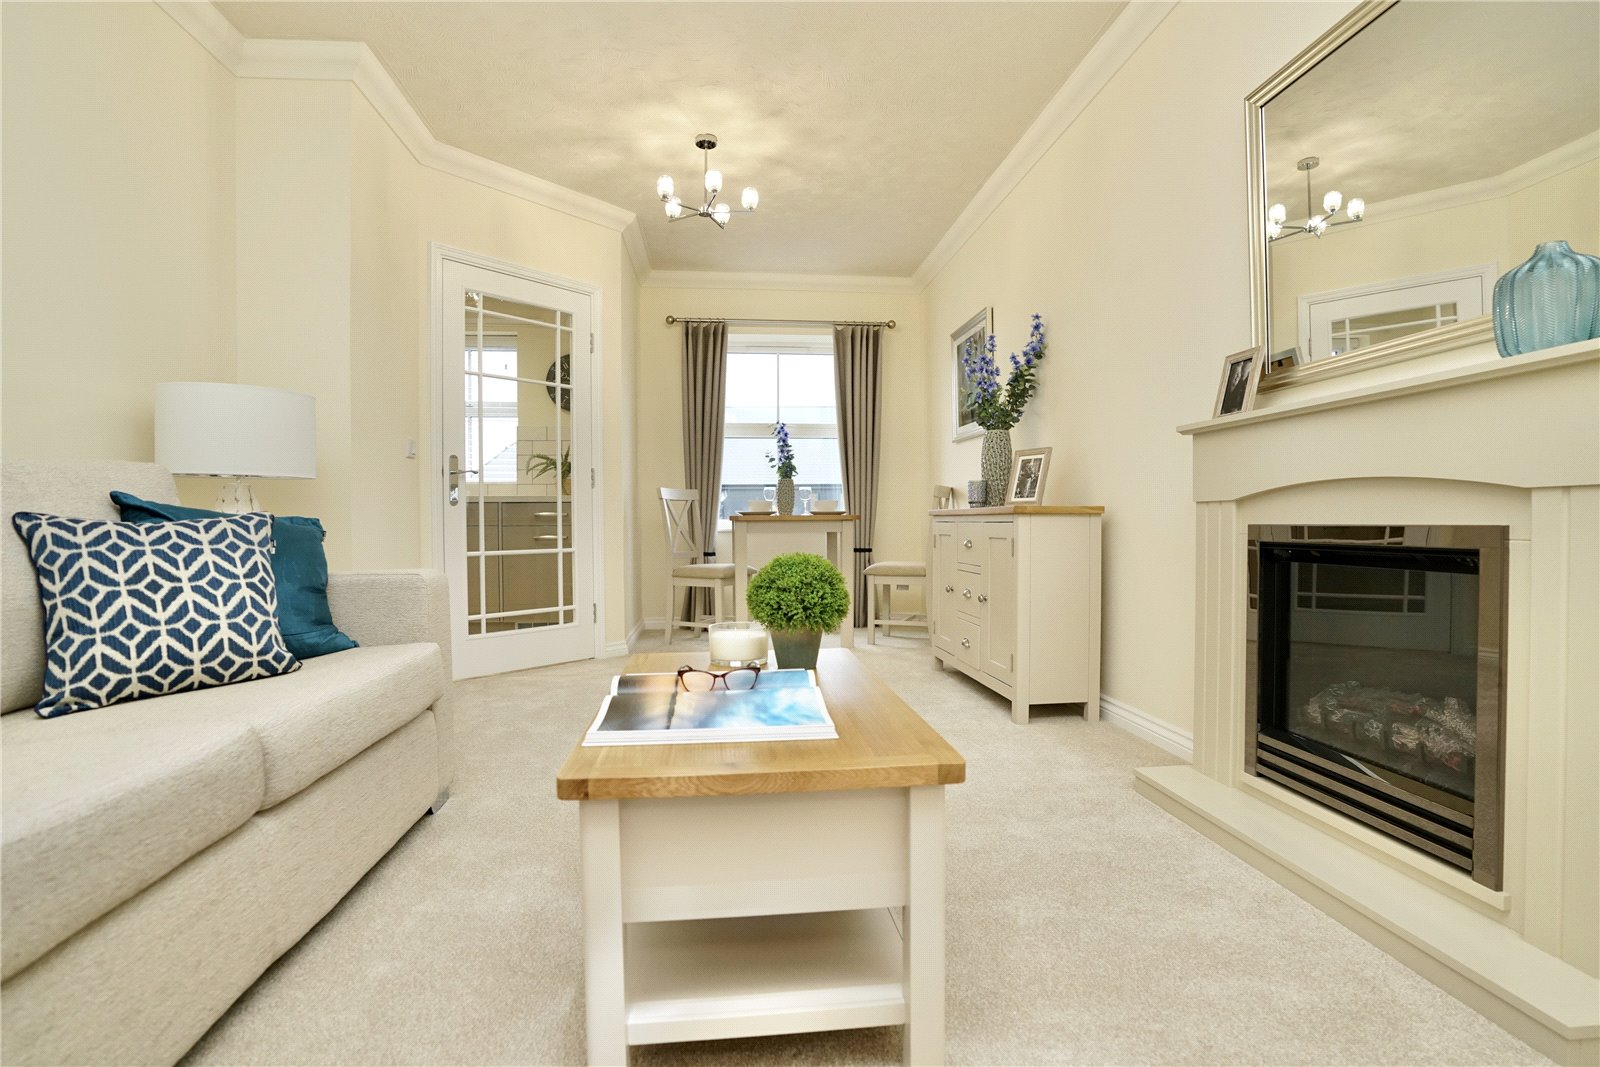 1 bed apartment for sale in Edison Bell Way, PE29 3FD 0